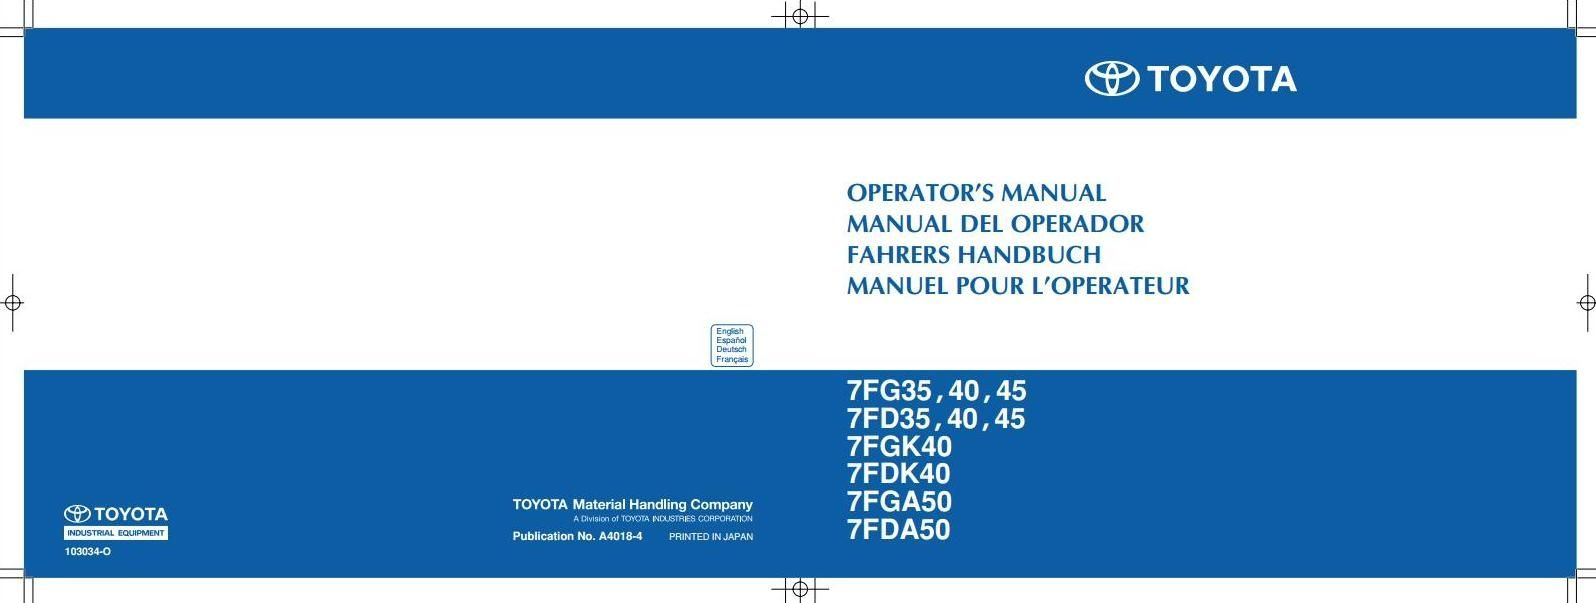 Toyota Truck 7fg35 40 45 7fd35 7fgk40 7fdk40 7fga50 Electric Forklift Wiring Diagrams Type 7fg 7fd Original Factory Manuals For Bt Forclift Trucks Contains High Quality Images Circuit And Instructions